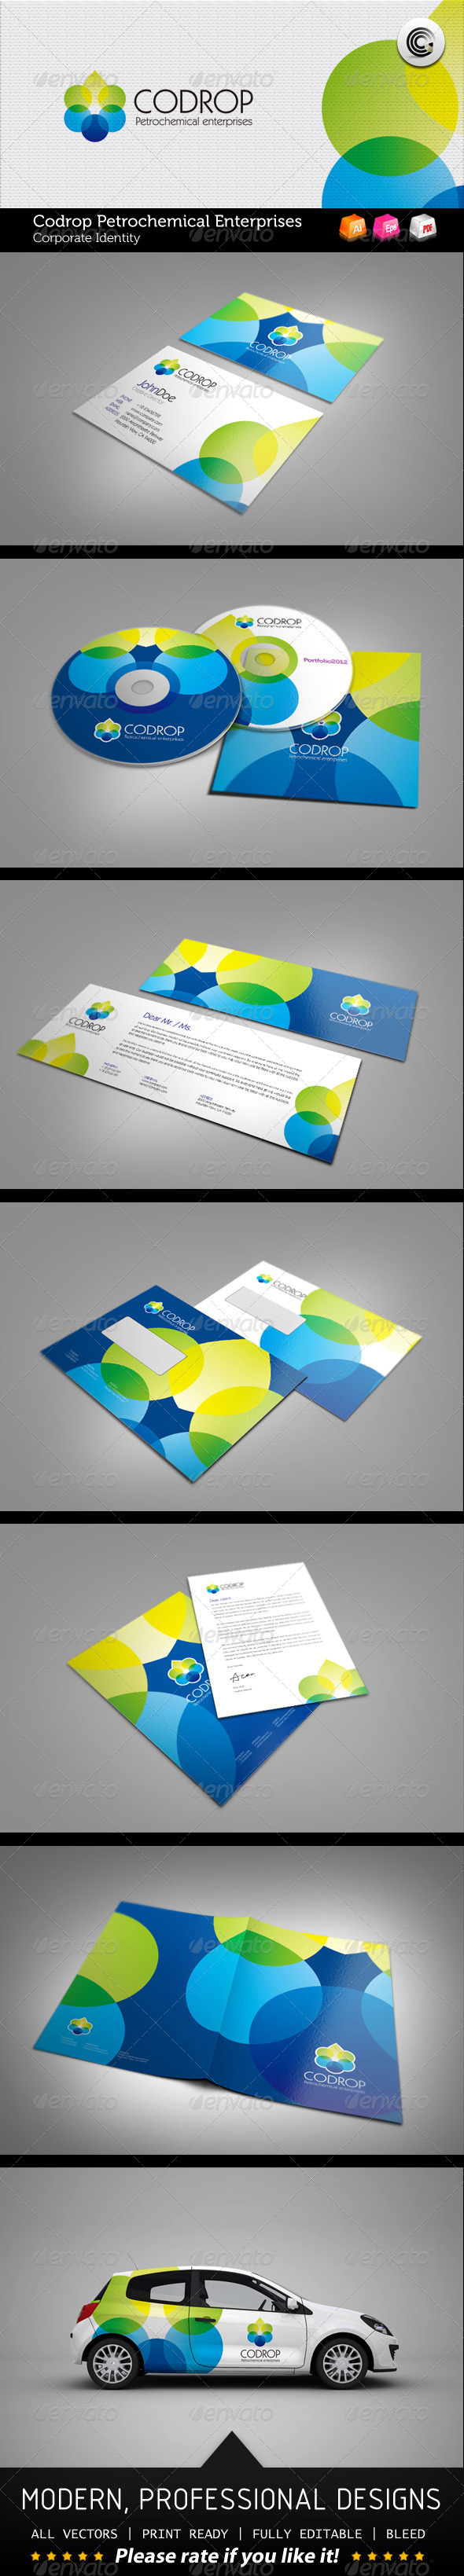 Codrop Petrochemical Enterprises Corporate Identity - Stationery Print Templates